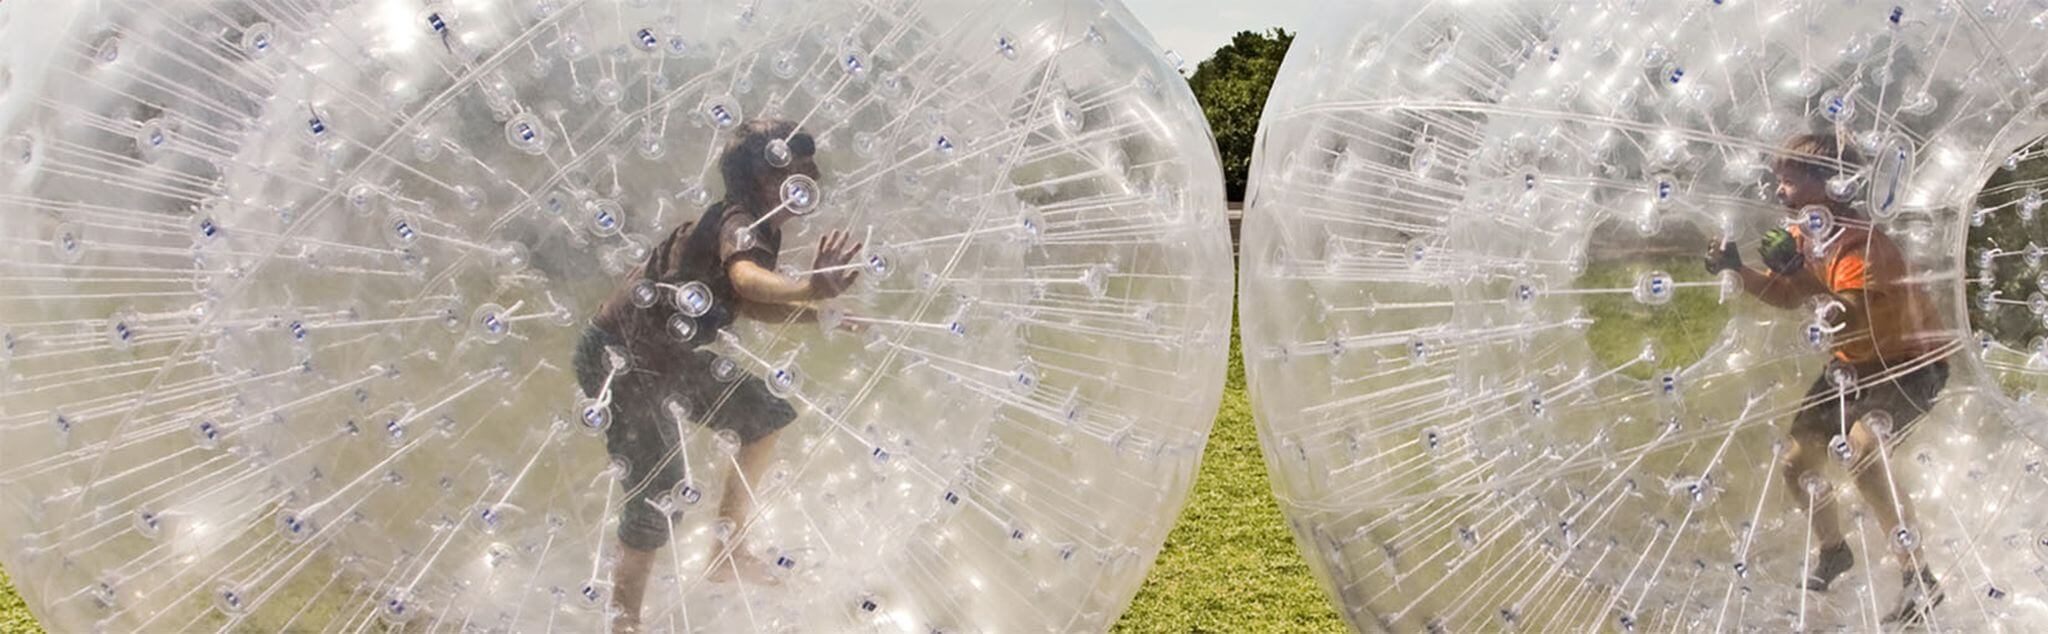 Bubble Football a Roma